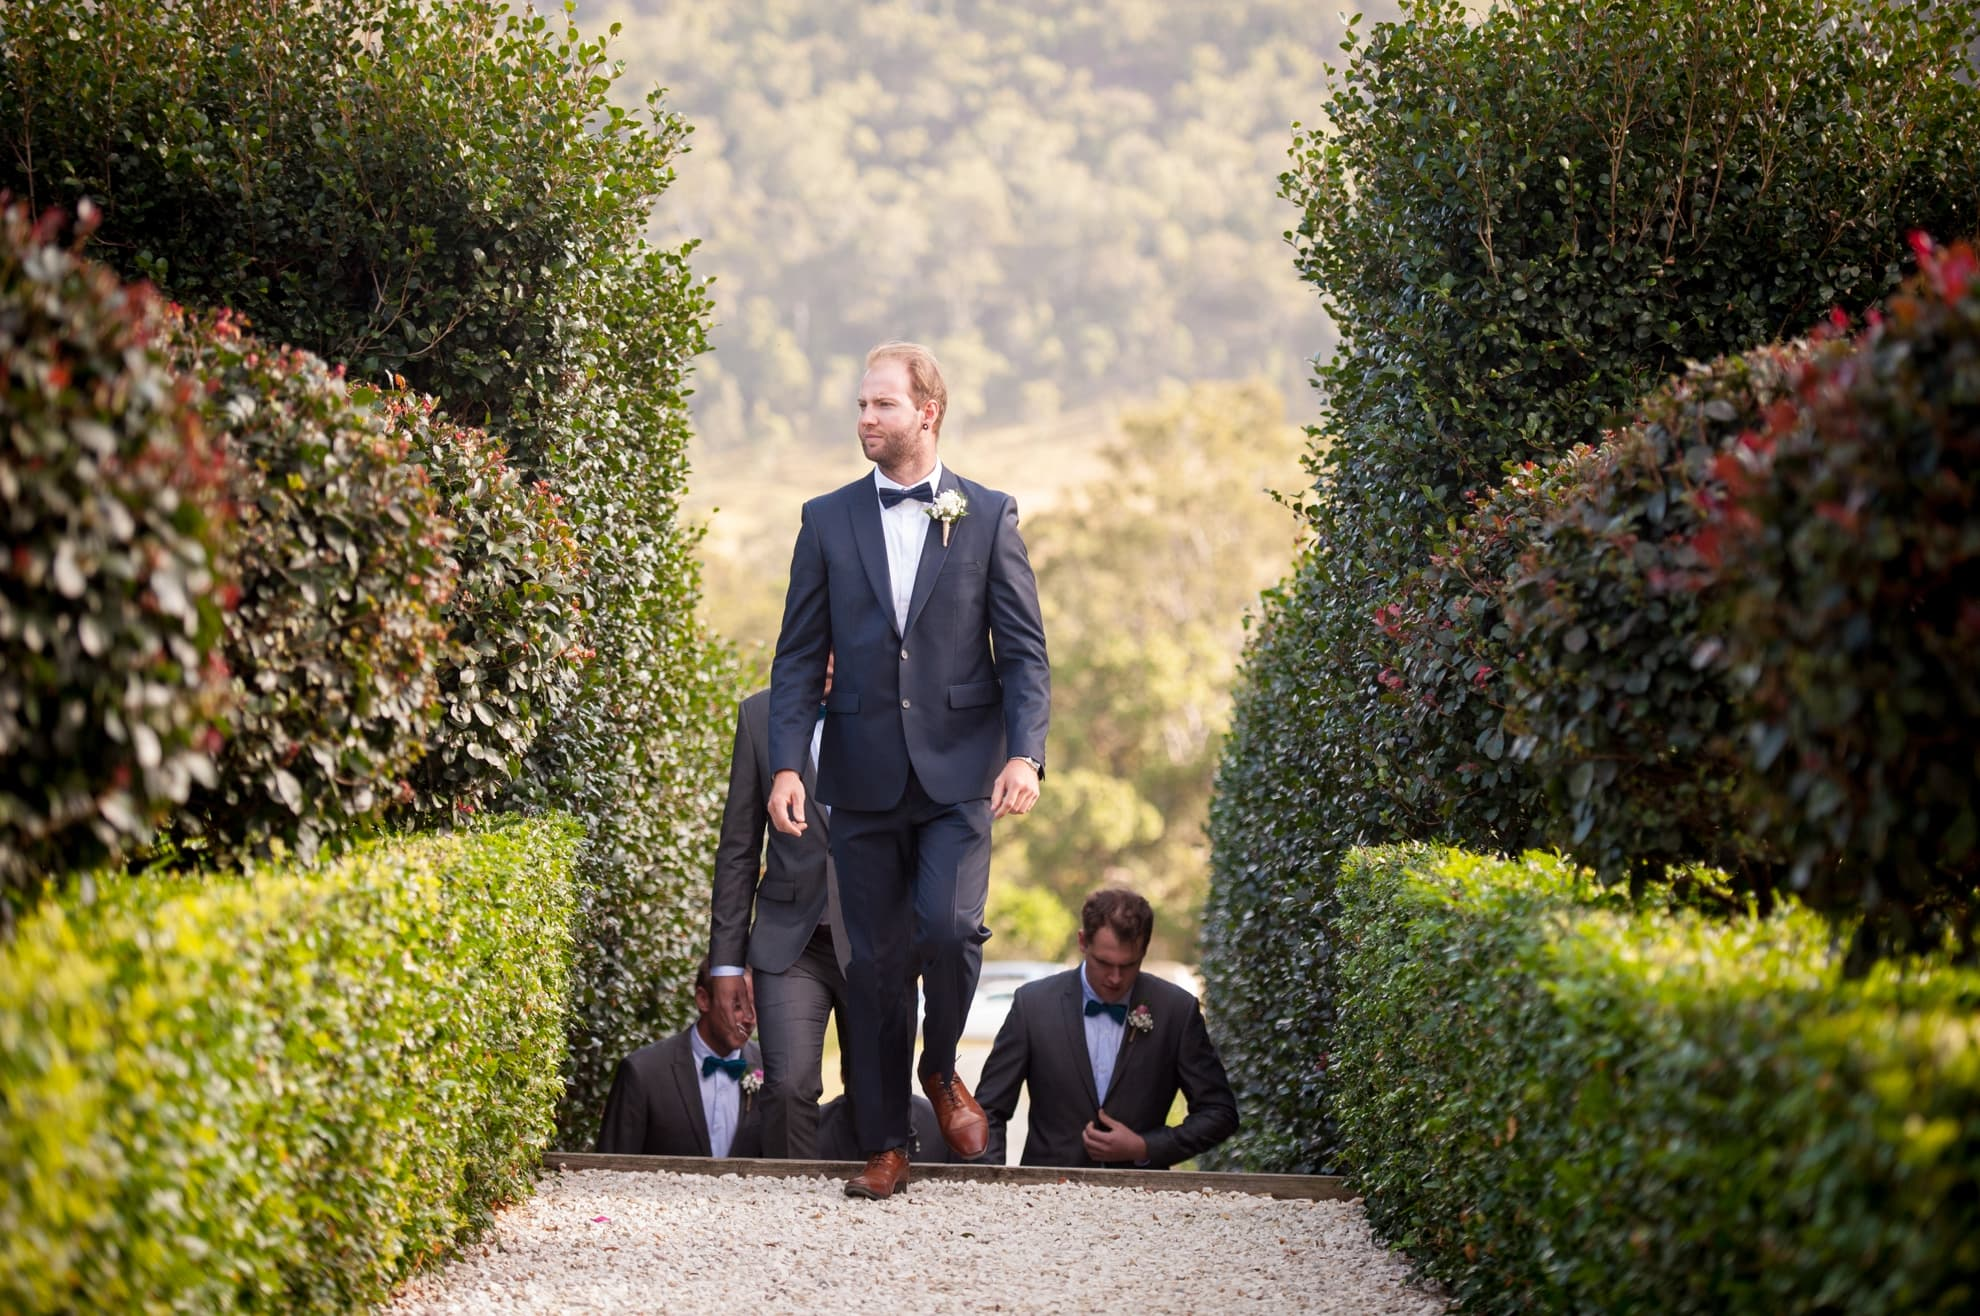 groom-walks-fast-up-the-garden-path-to-his-wedding-ceremony